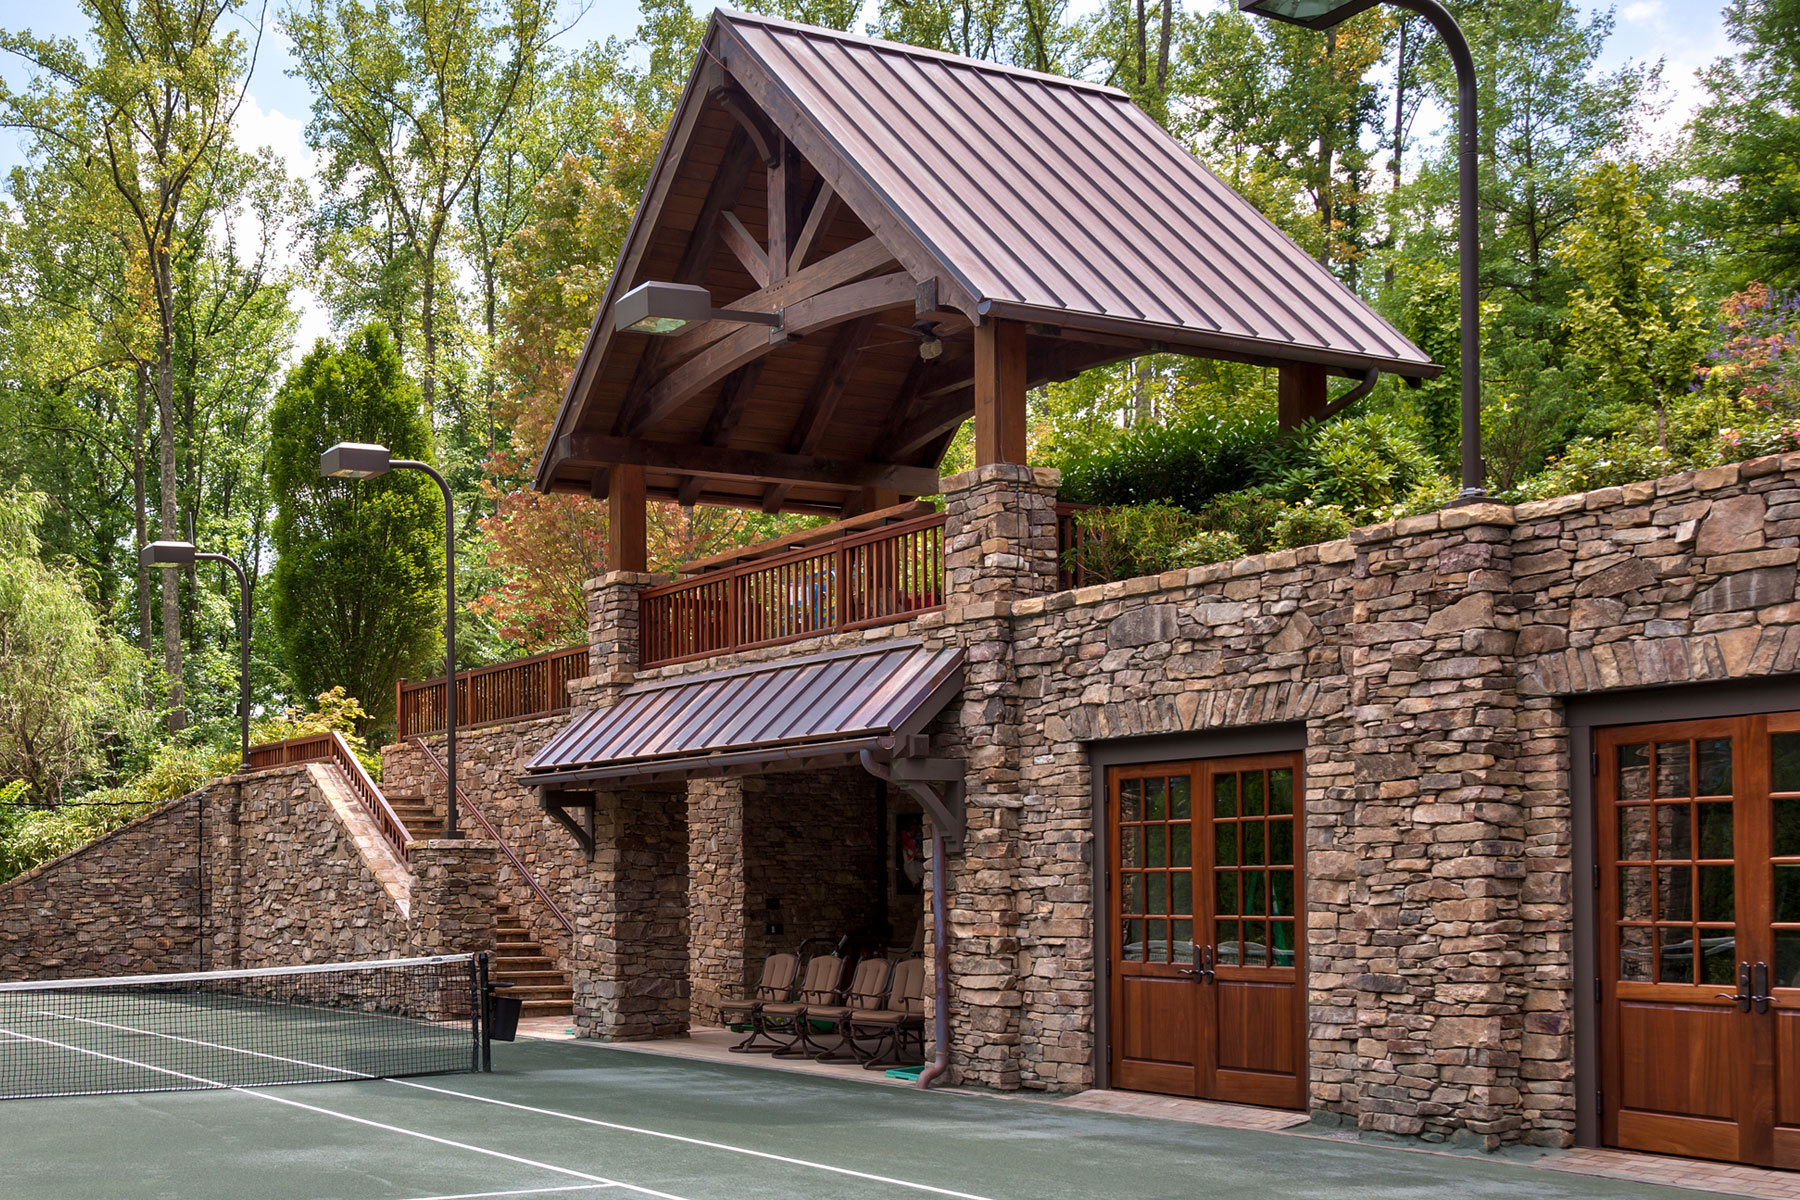 Tennis court pavilion made with timber and stone for courtside viewing